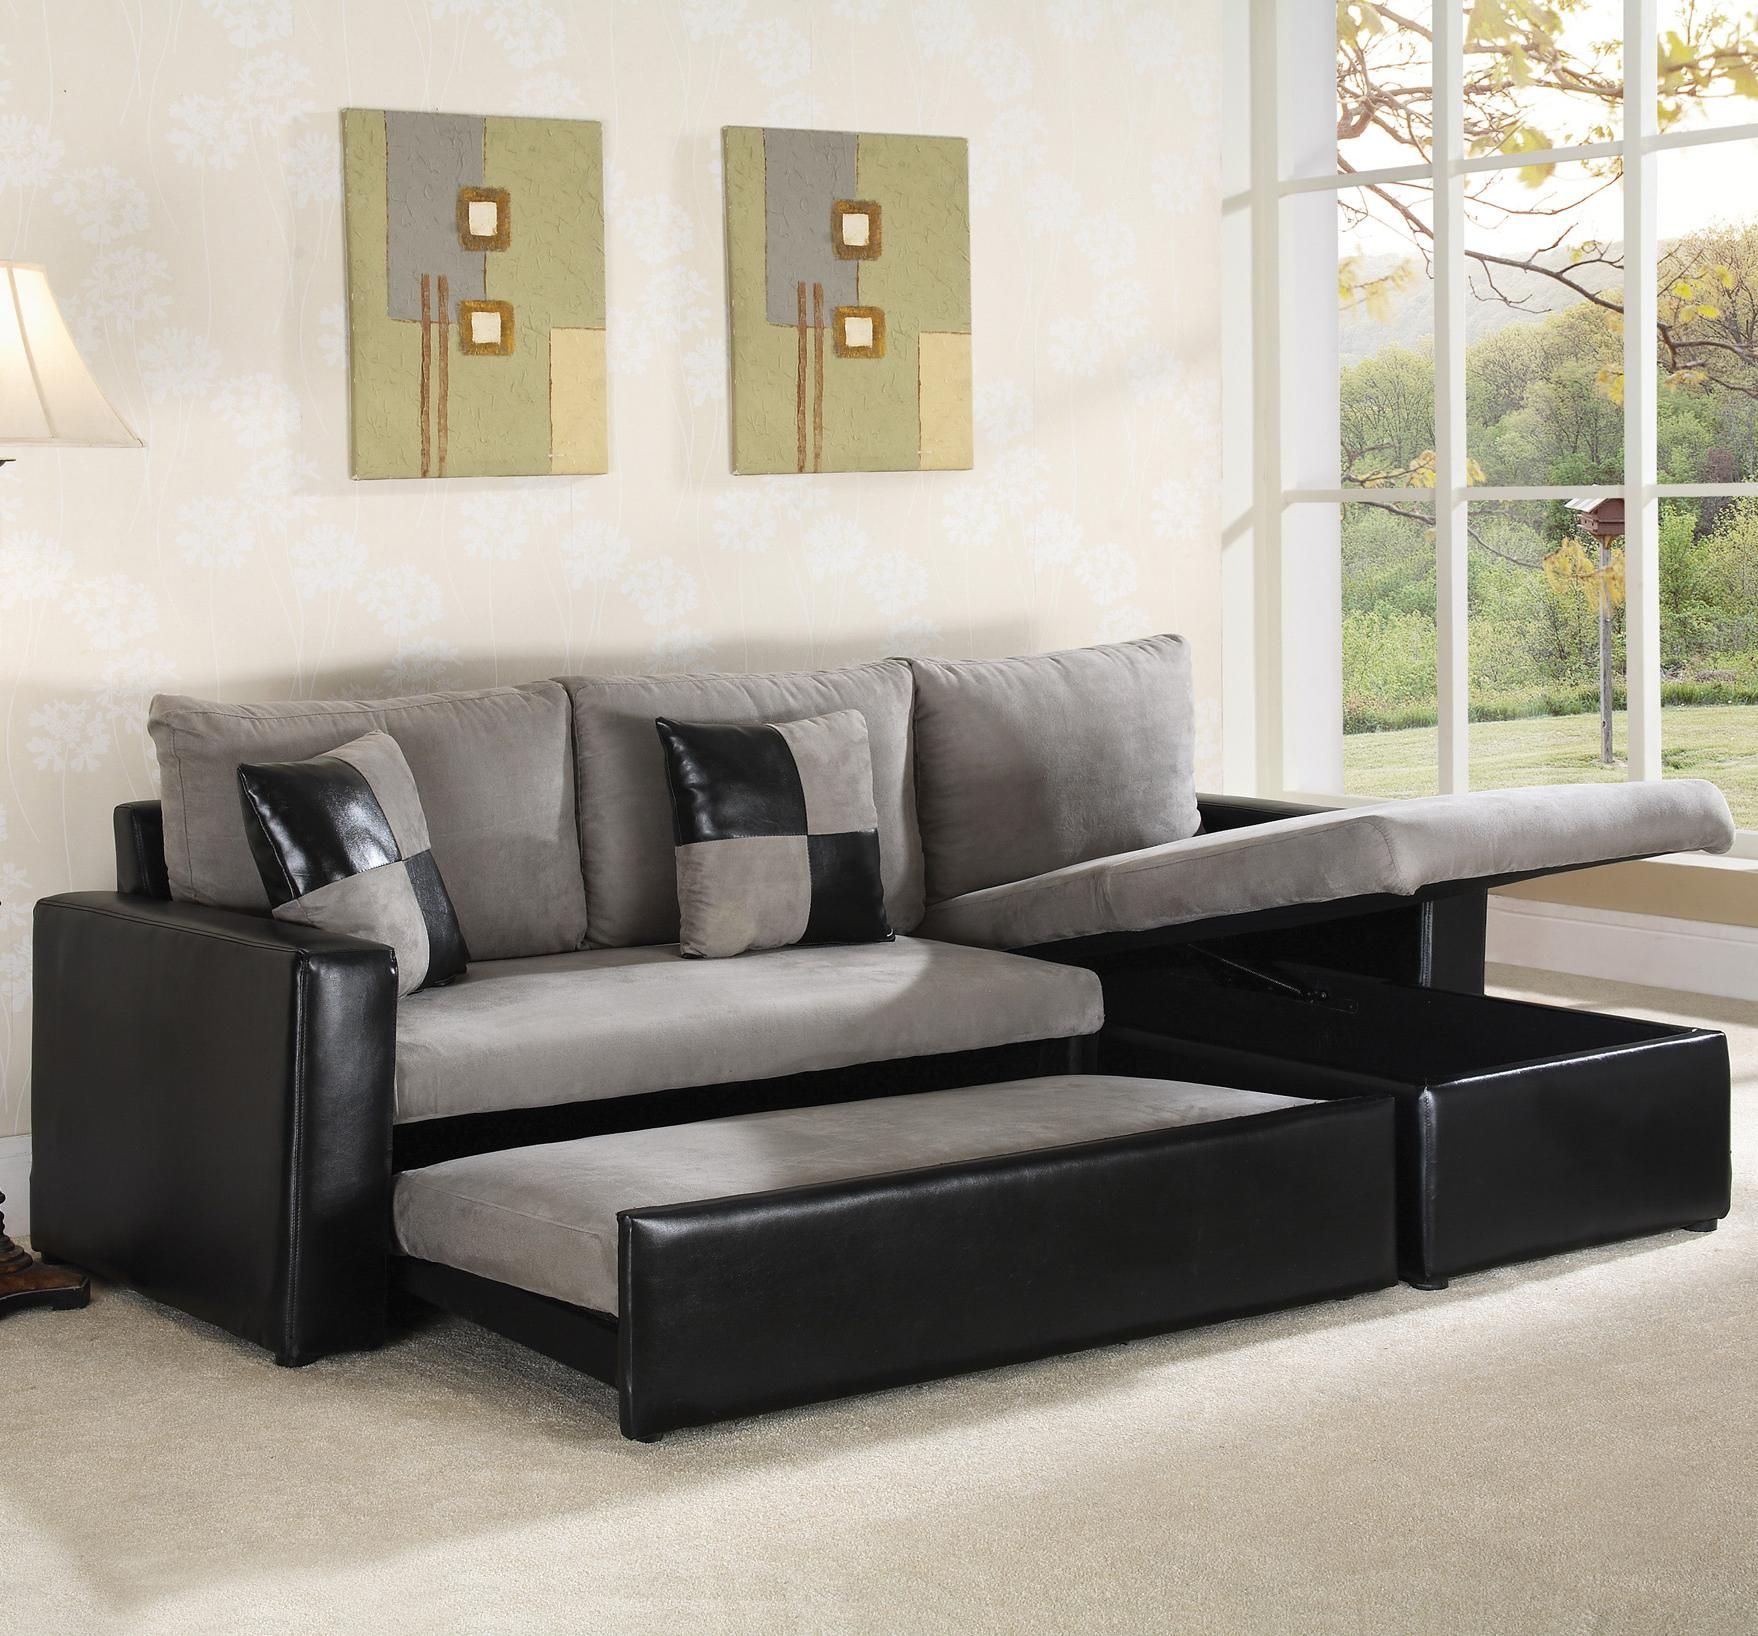 Sofa Tables Furniture Grey Fabrics Materials Combine With Black Leather Covering Elegant Cozy Sleeper Sofa Sleeper Sofa One of Wonderful Also Useful Furniture